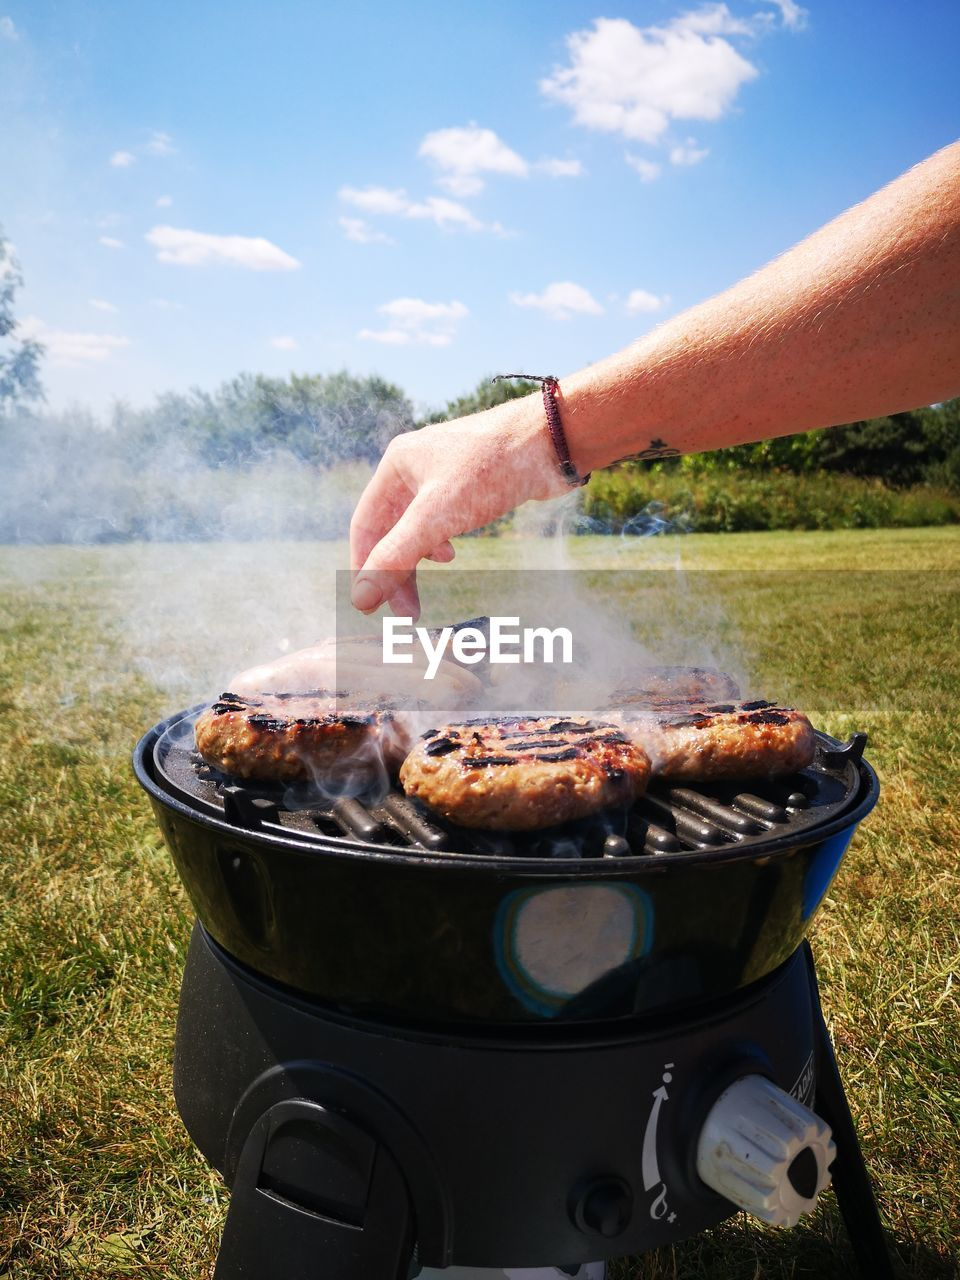 human hand, hand, human body part, one person, food and drink, barbecue, food, real people, land, day, holding, nature, smoke - physical structure, meat, heat - temperature, preparation, barbecue grill, sky, leisure activity, outdoors, preparing food, finger